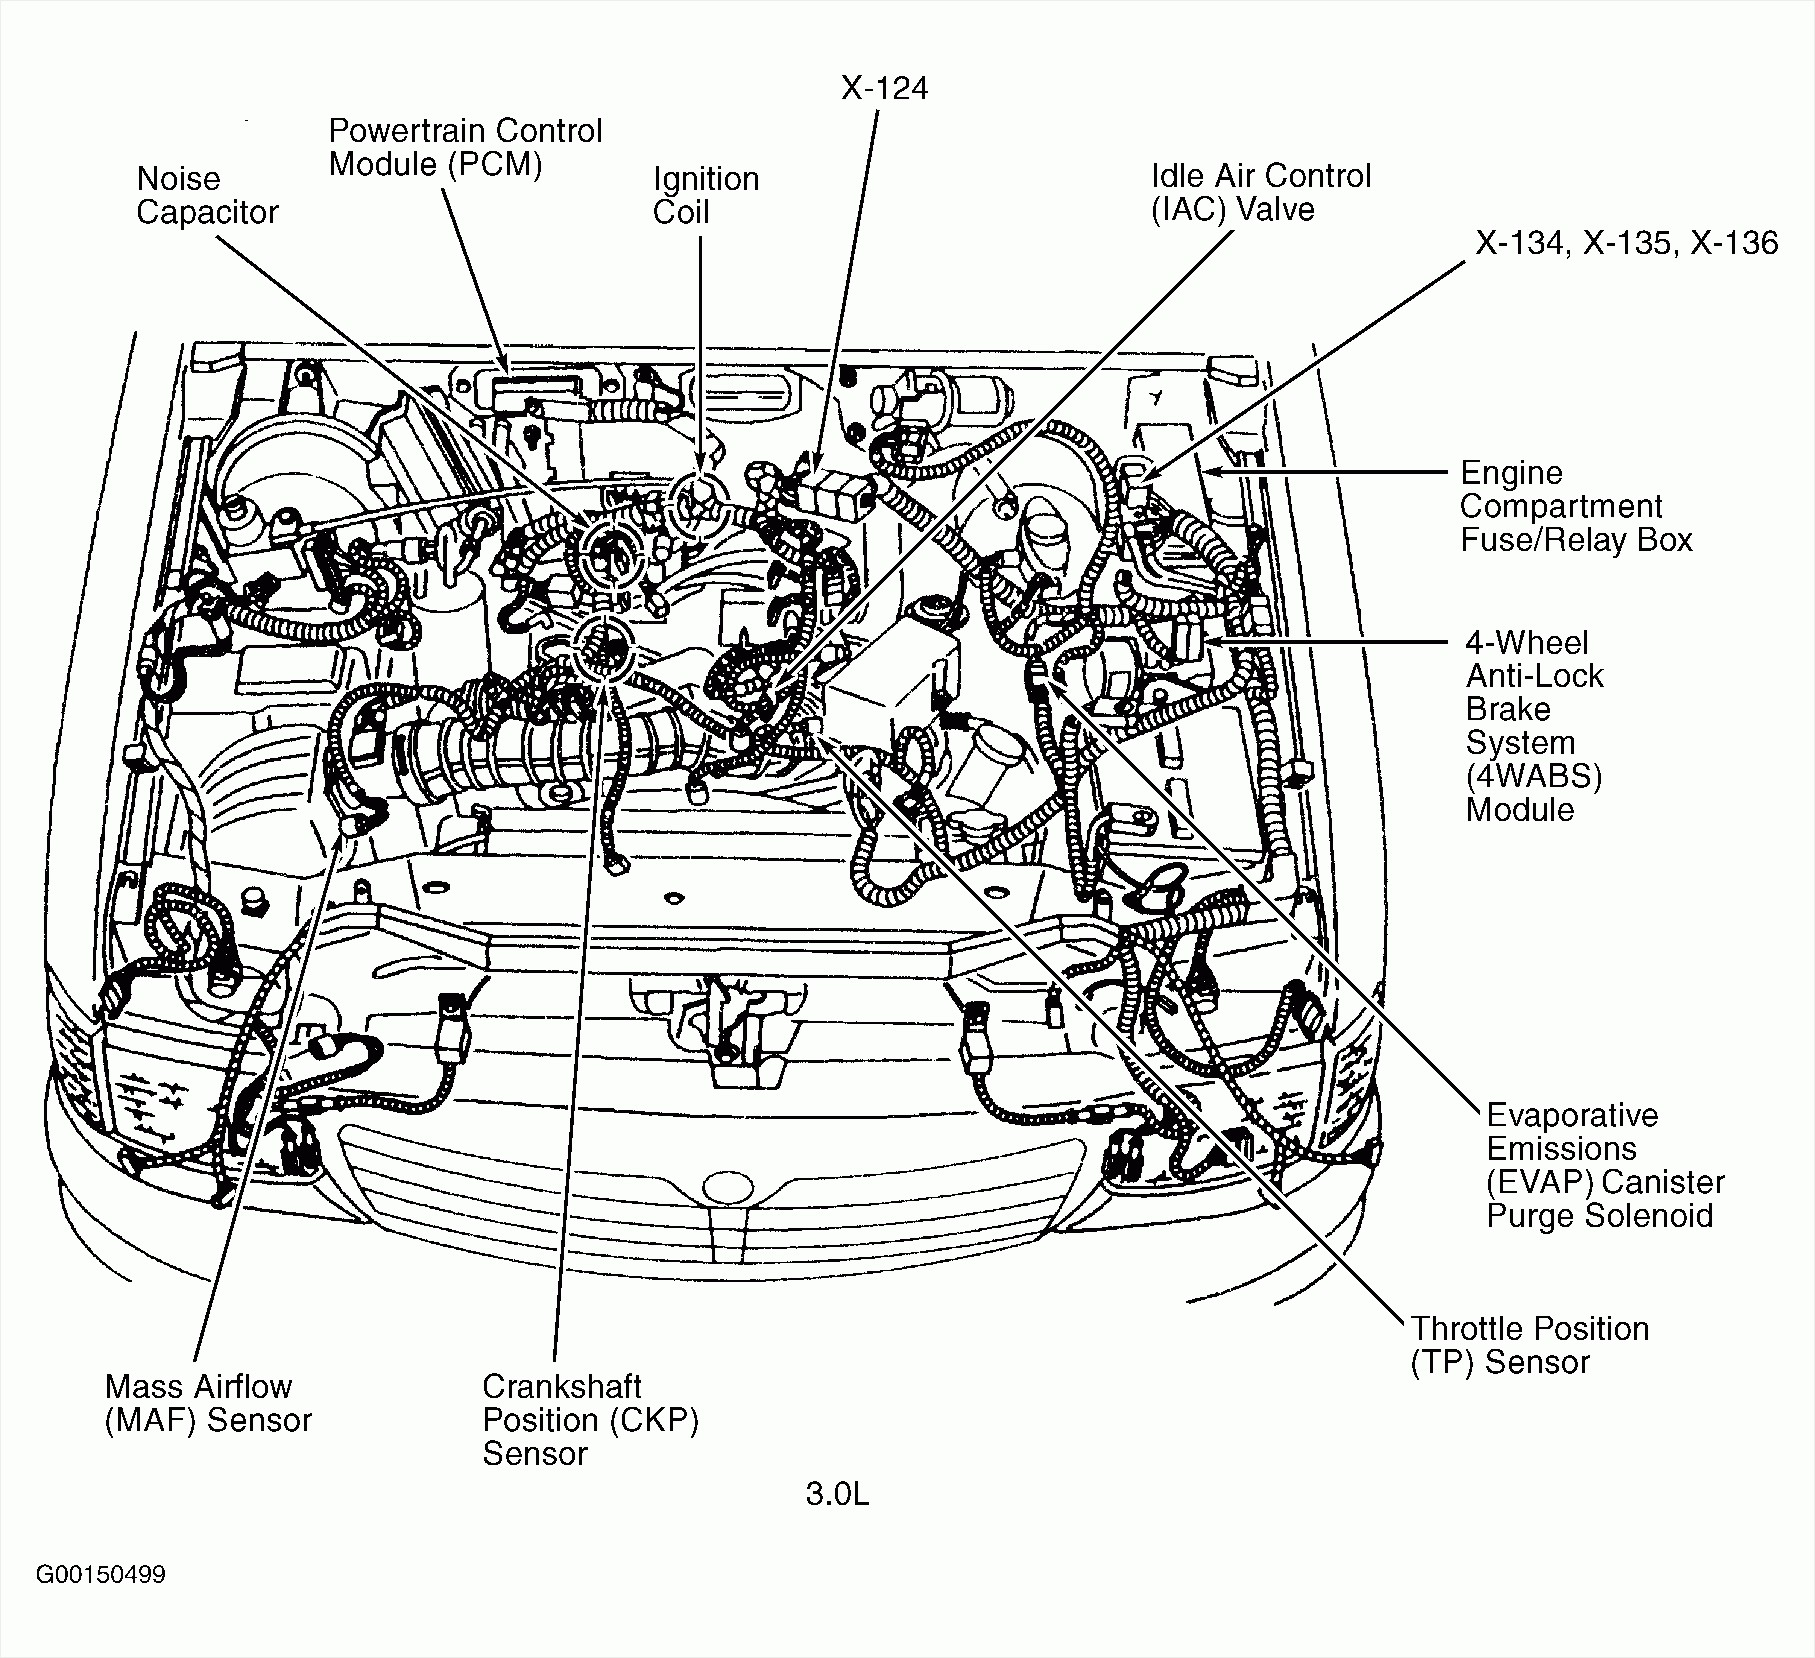 2008 ford Escape Parts Diagram 2004 Mazda 6 V6 Engine Diagram Wiring  Diagrams Of 2008 ford